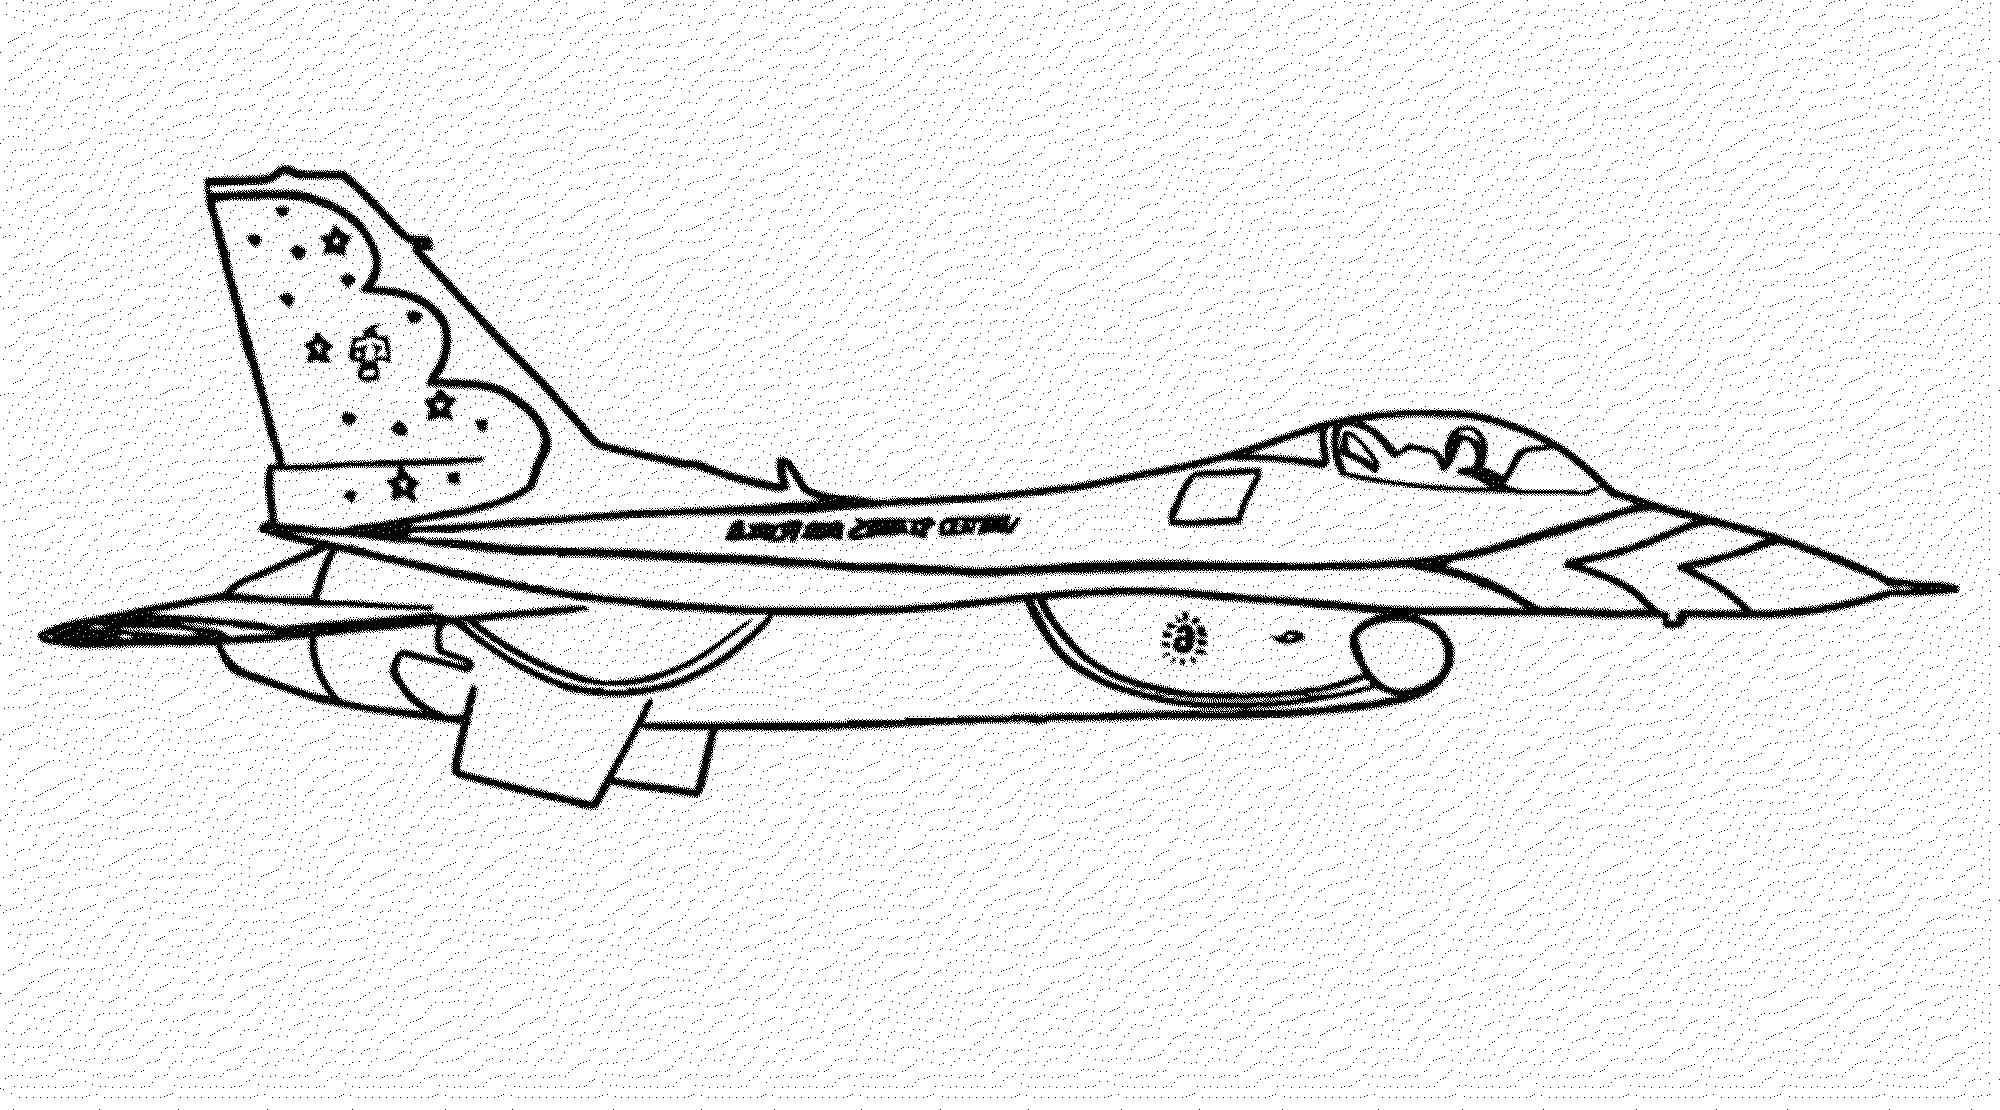 army-airplane-coloring-pages | | BestAppsForKids.com